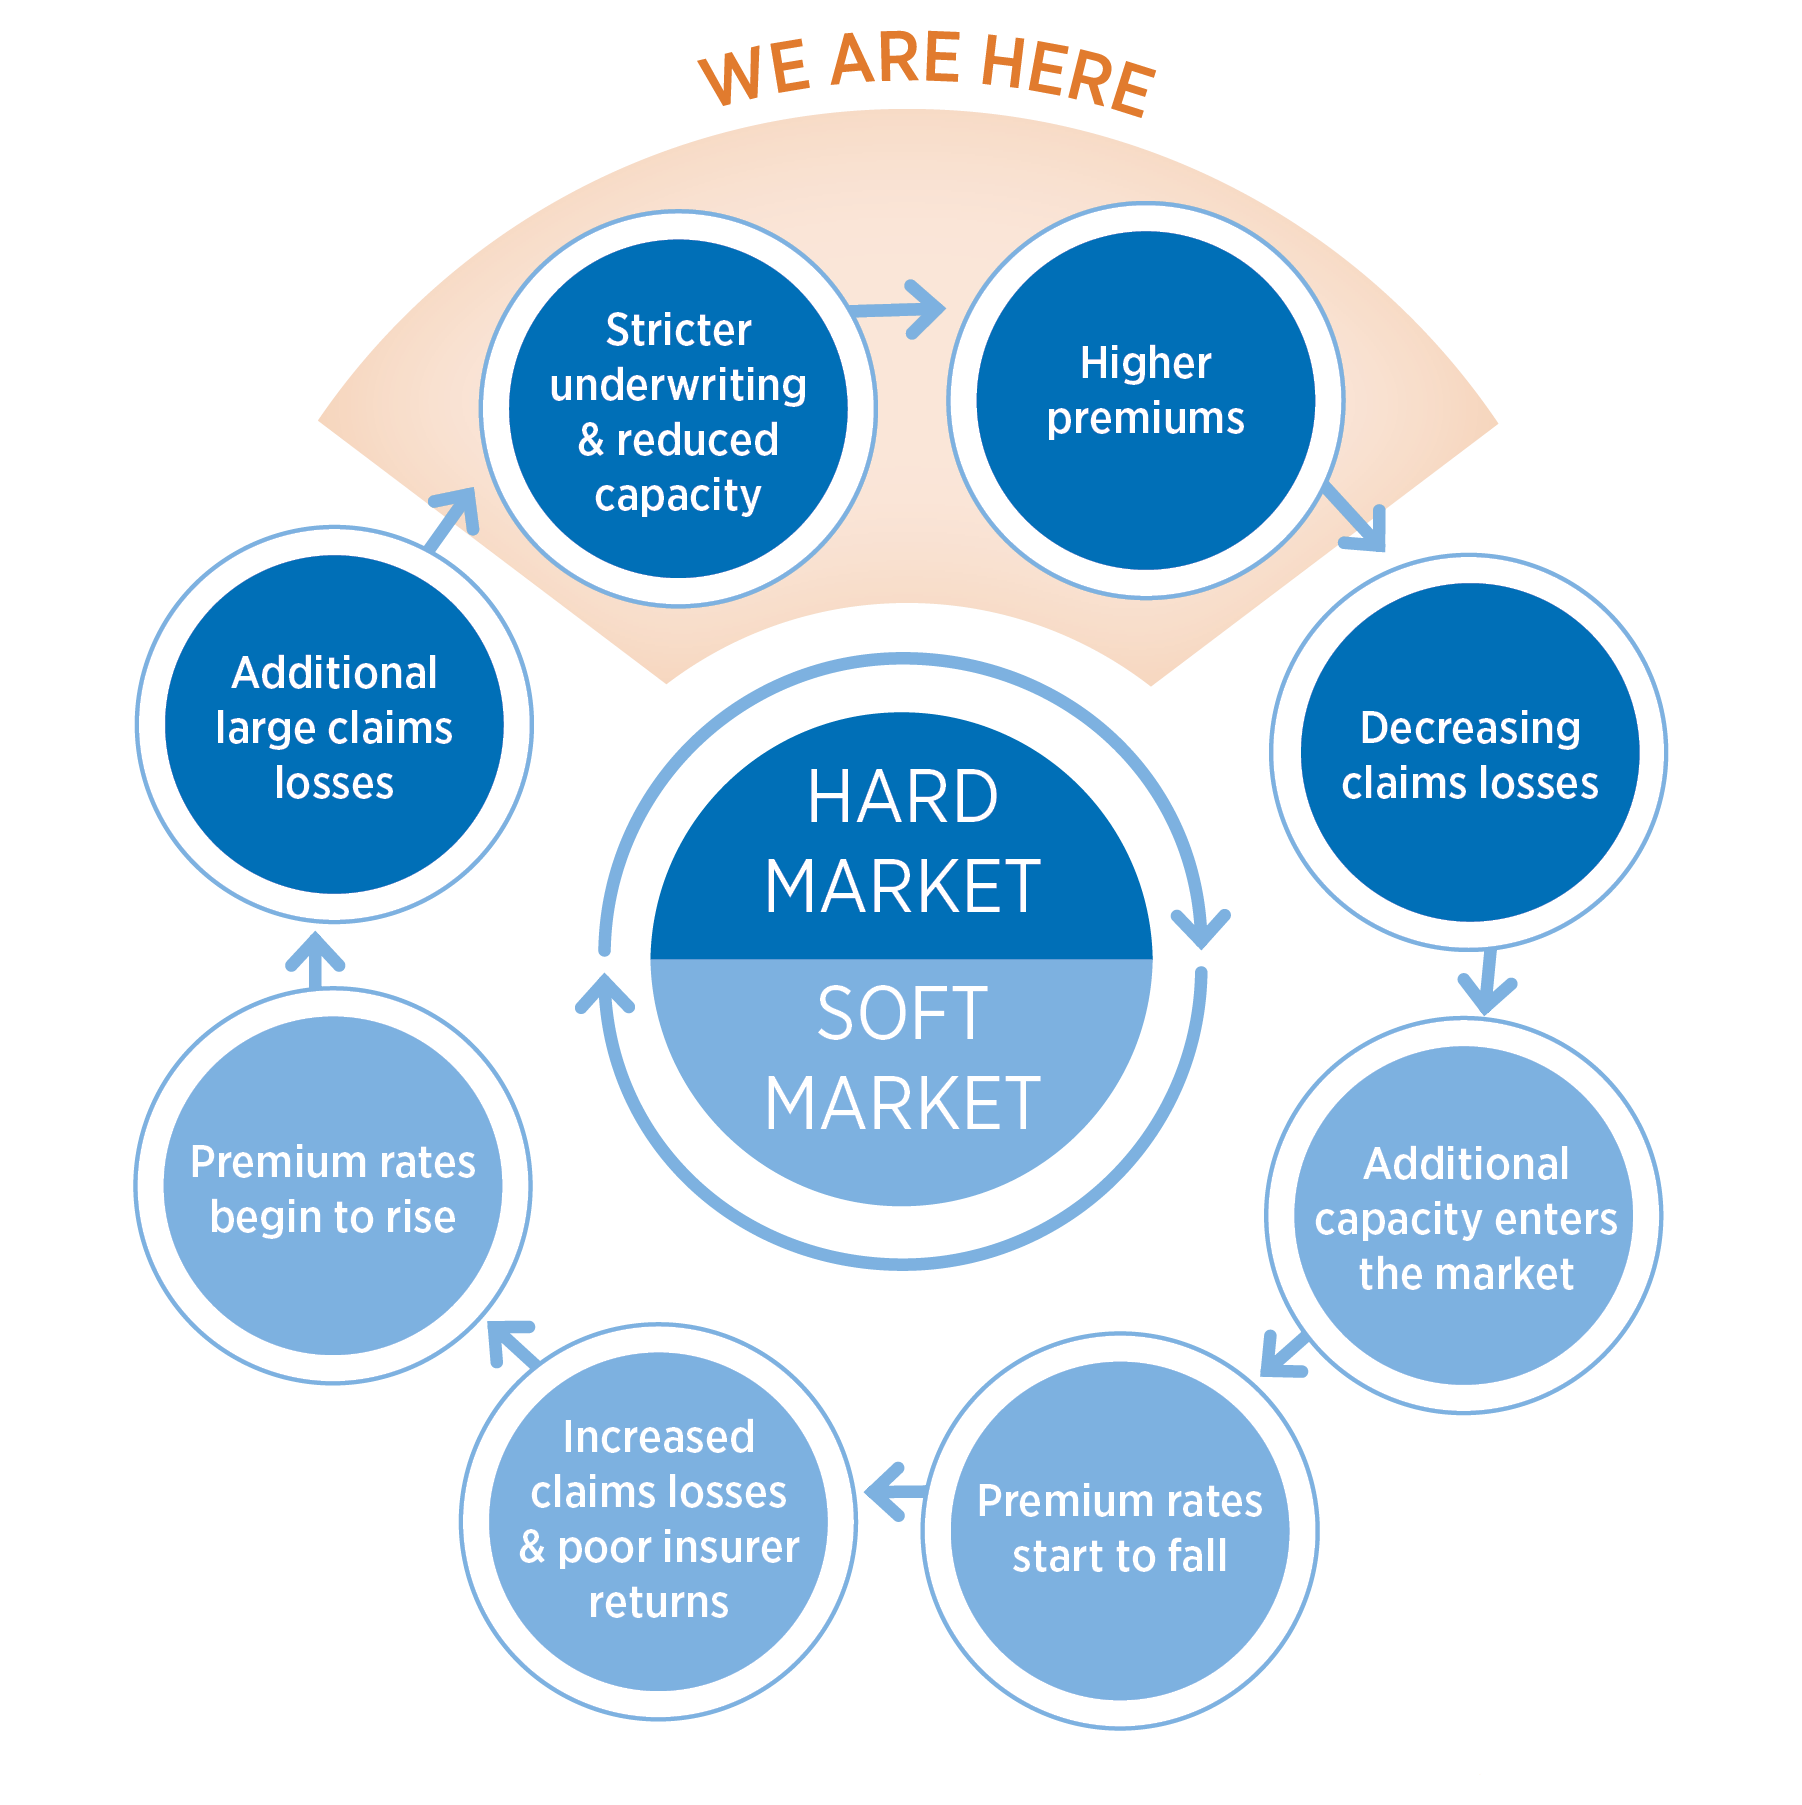 2676 - insurance market report linkedin_cycle graphic